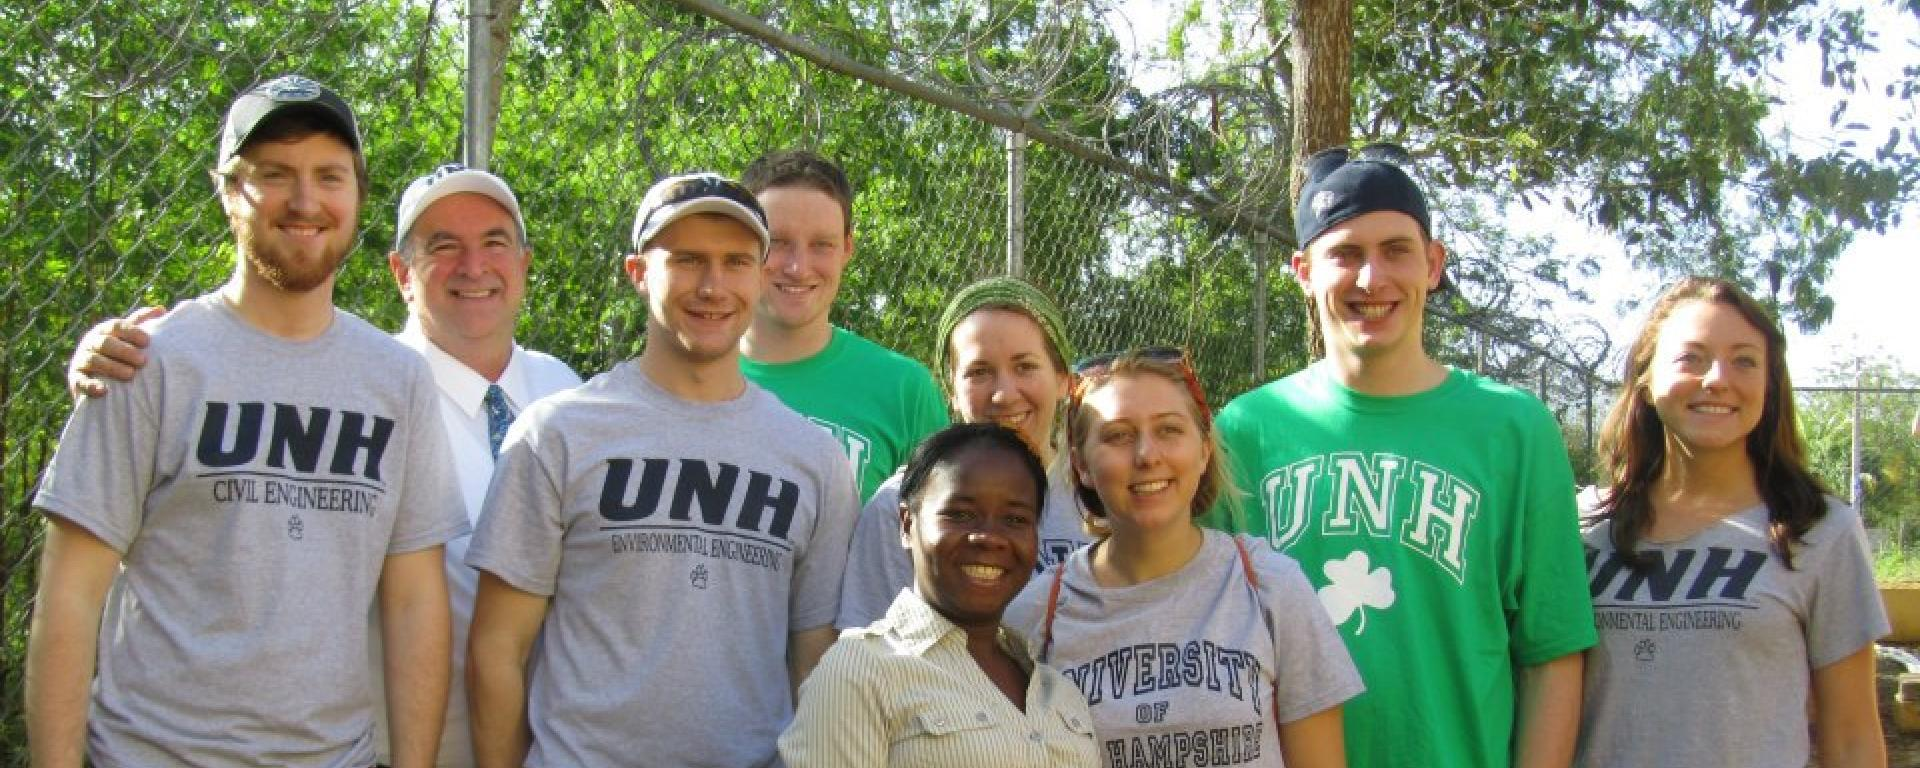 UNH's Engineers without boarders